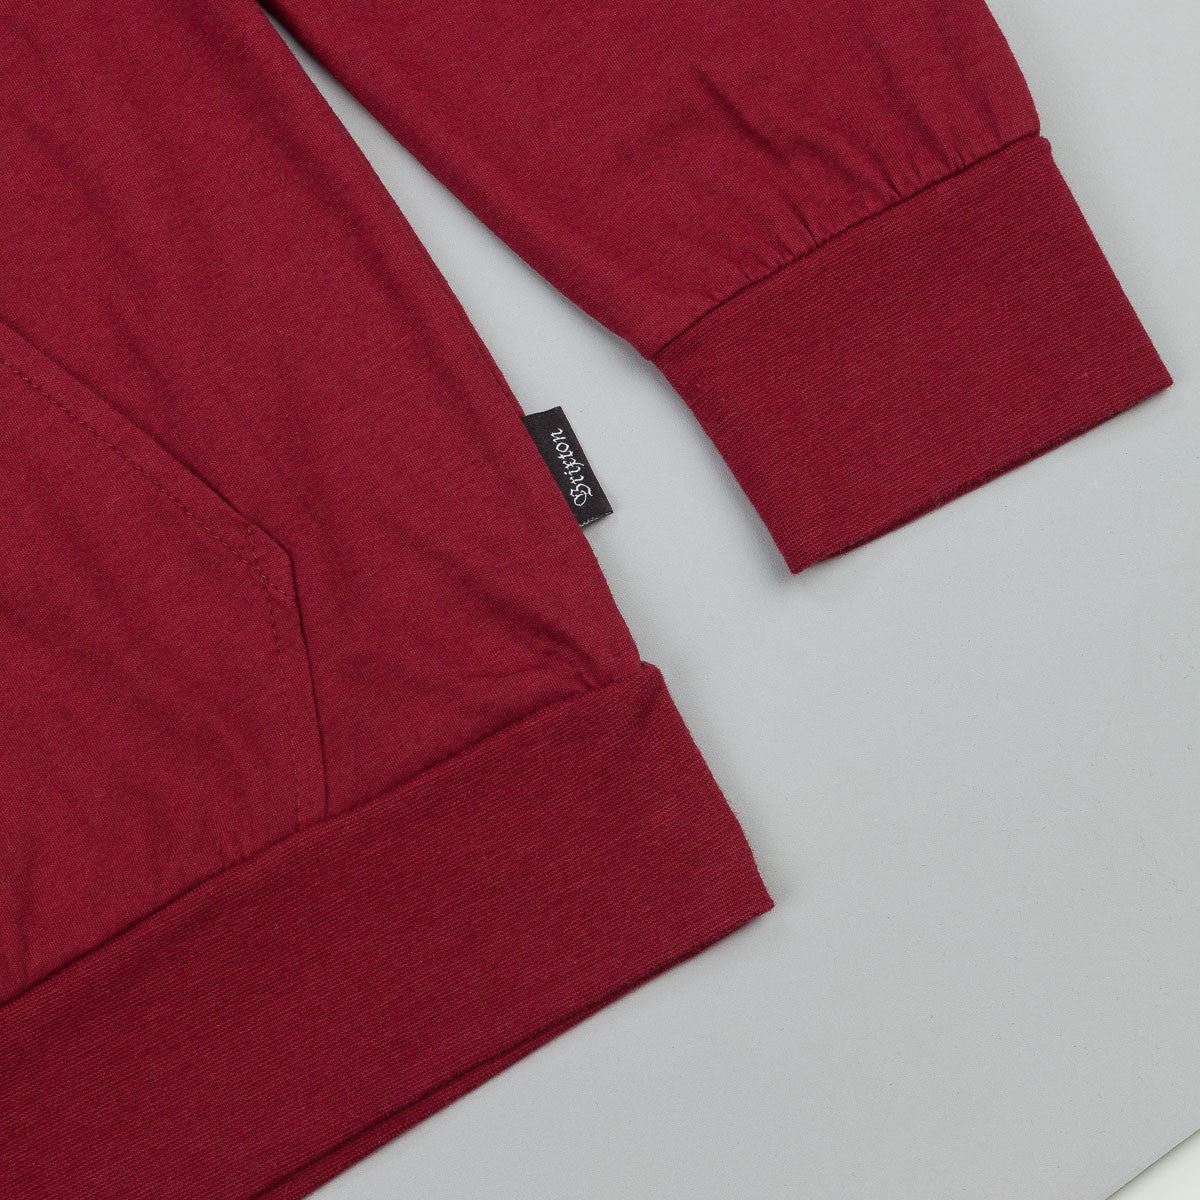 Brixton Voyager Long Sleeve Knit T-Shirt - Burgundy